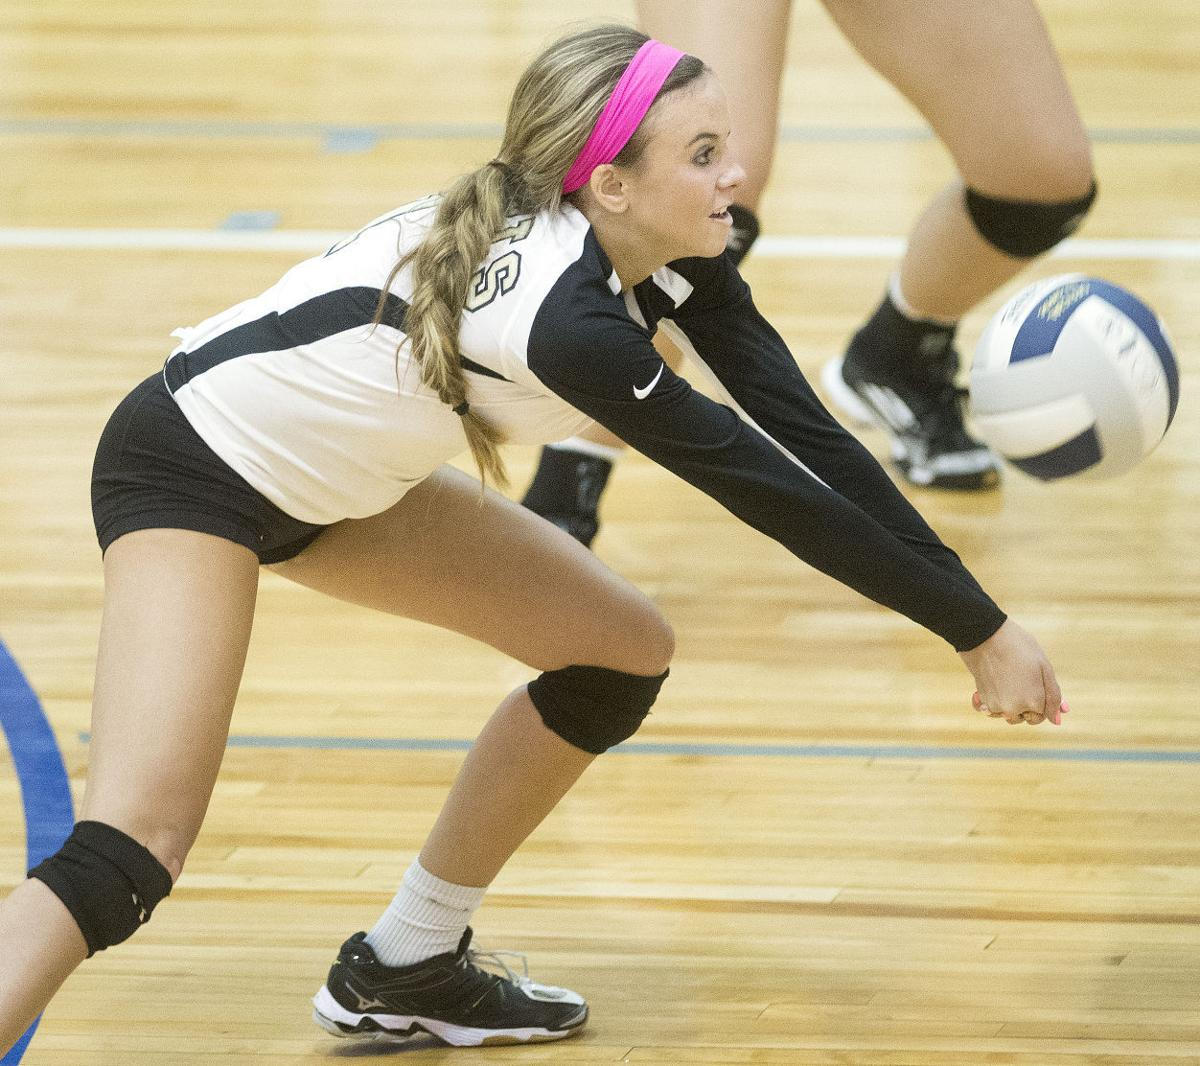 Lincoln Southeast vs. Lincoln East, prep volleyball, 9.23.15